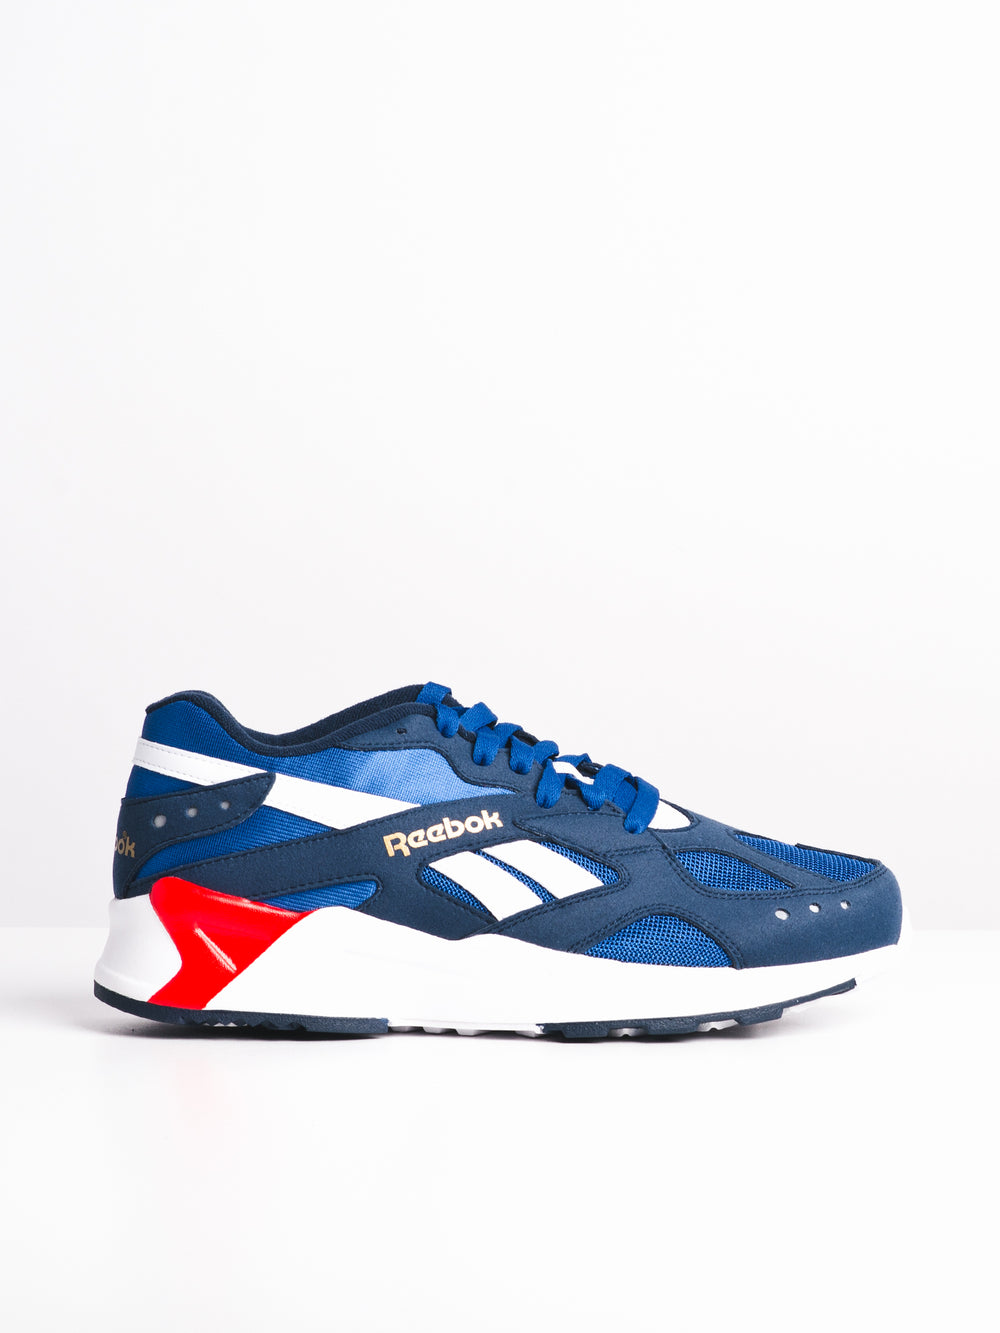 MENS AZTREK - NAVY/ROYAL - CLEARANCE